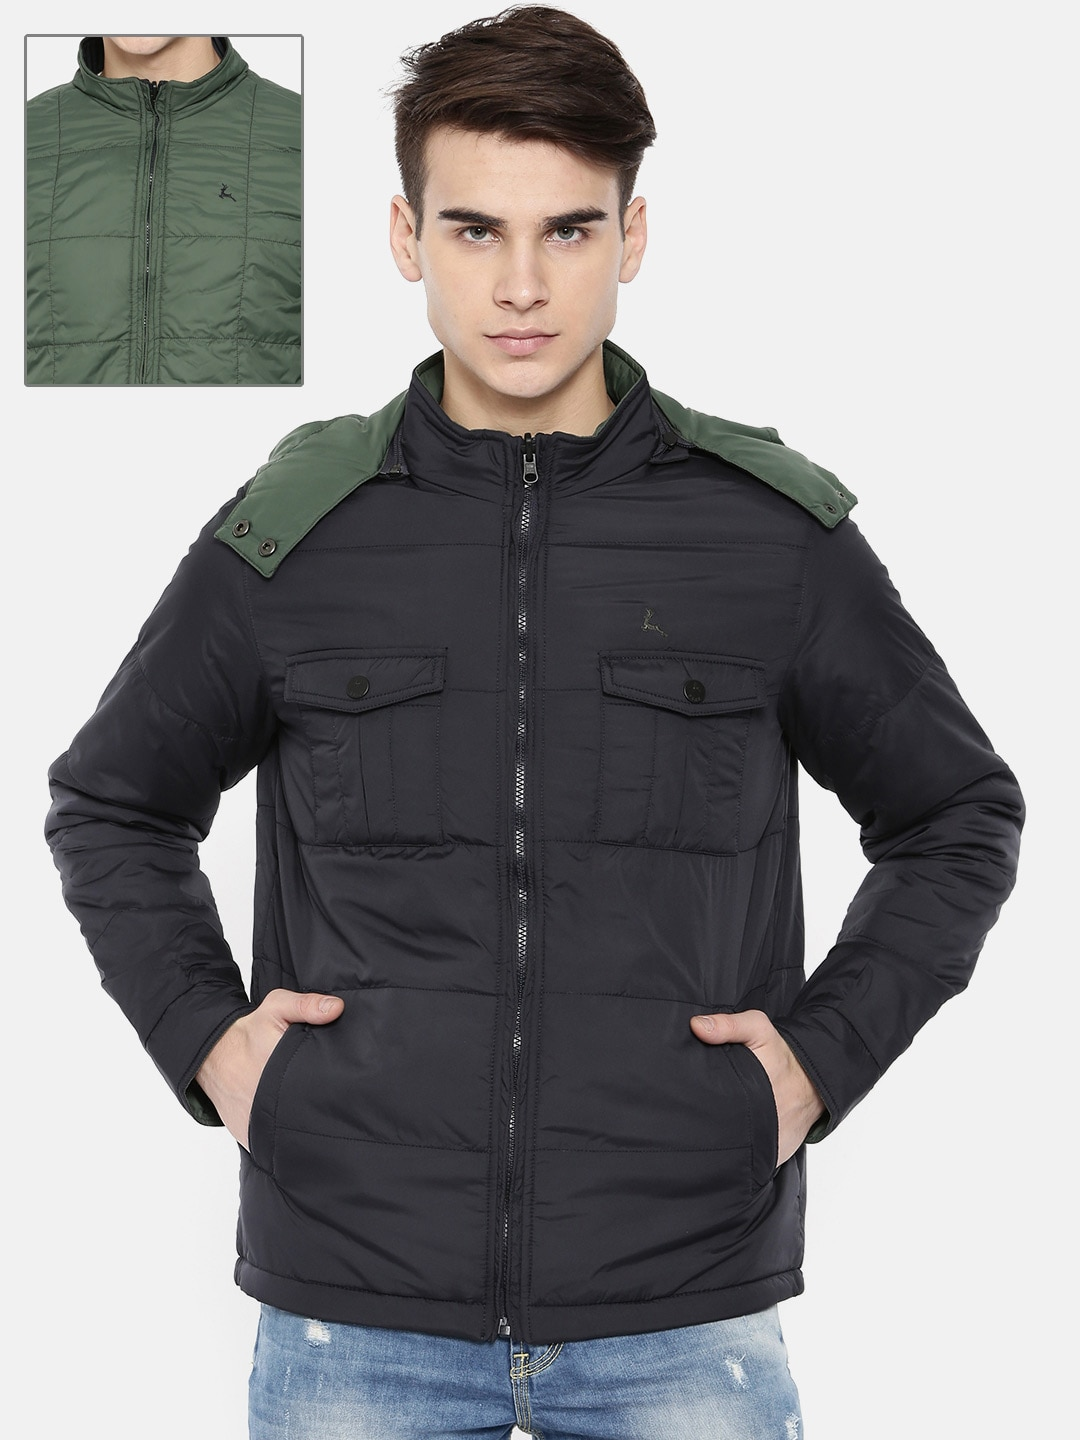 881a8c8aa Parx Men Navy Blue Solid Reversible Padded Jacket